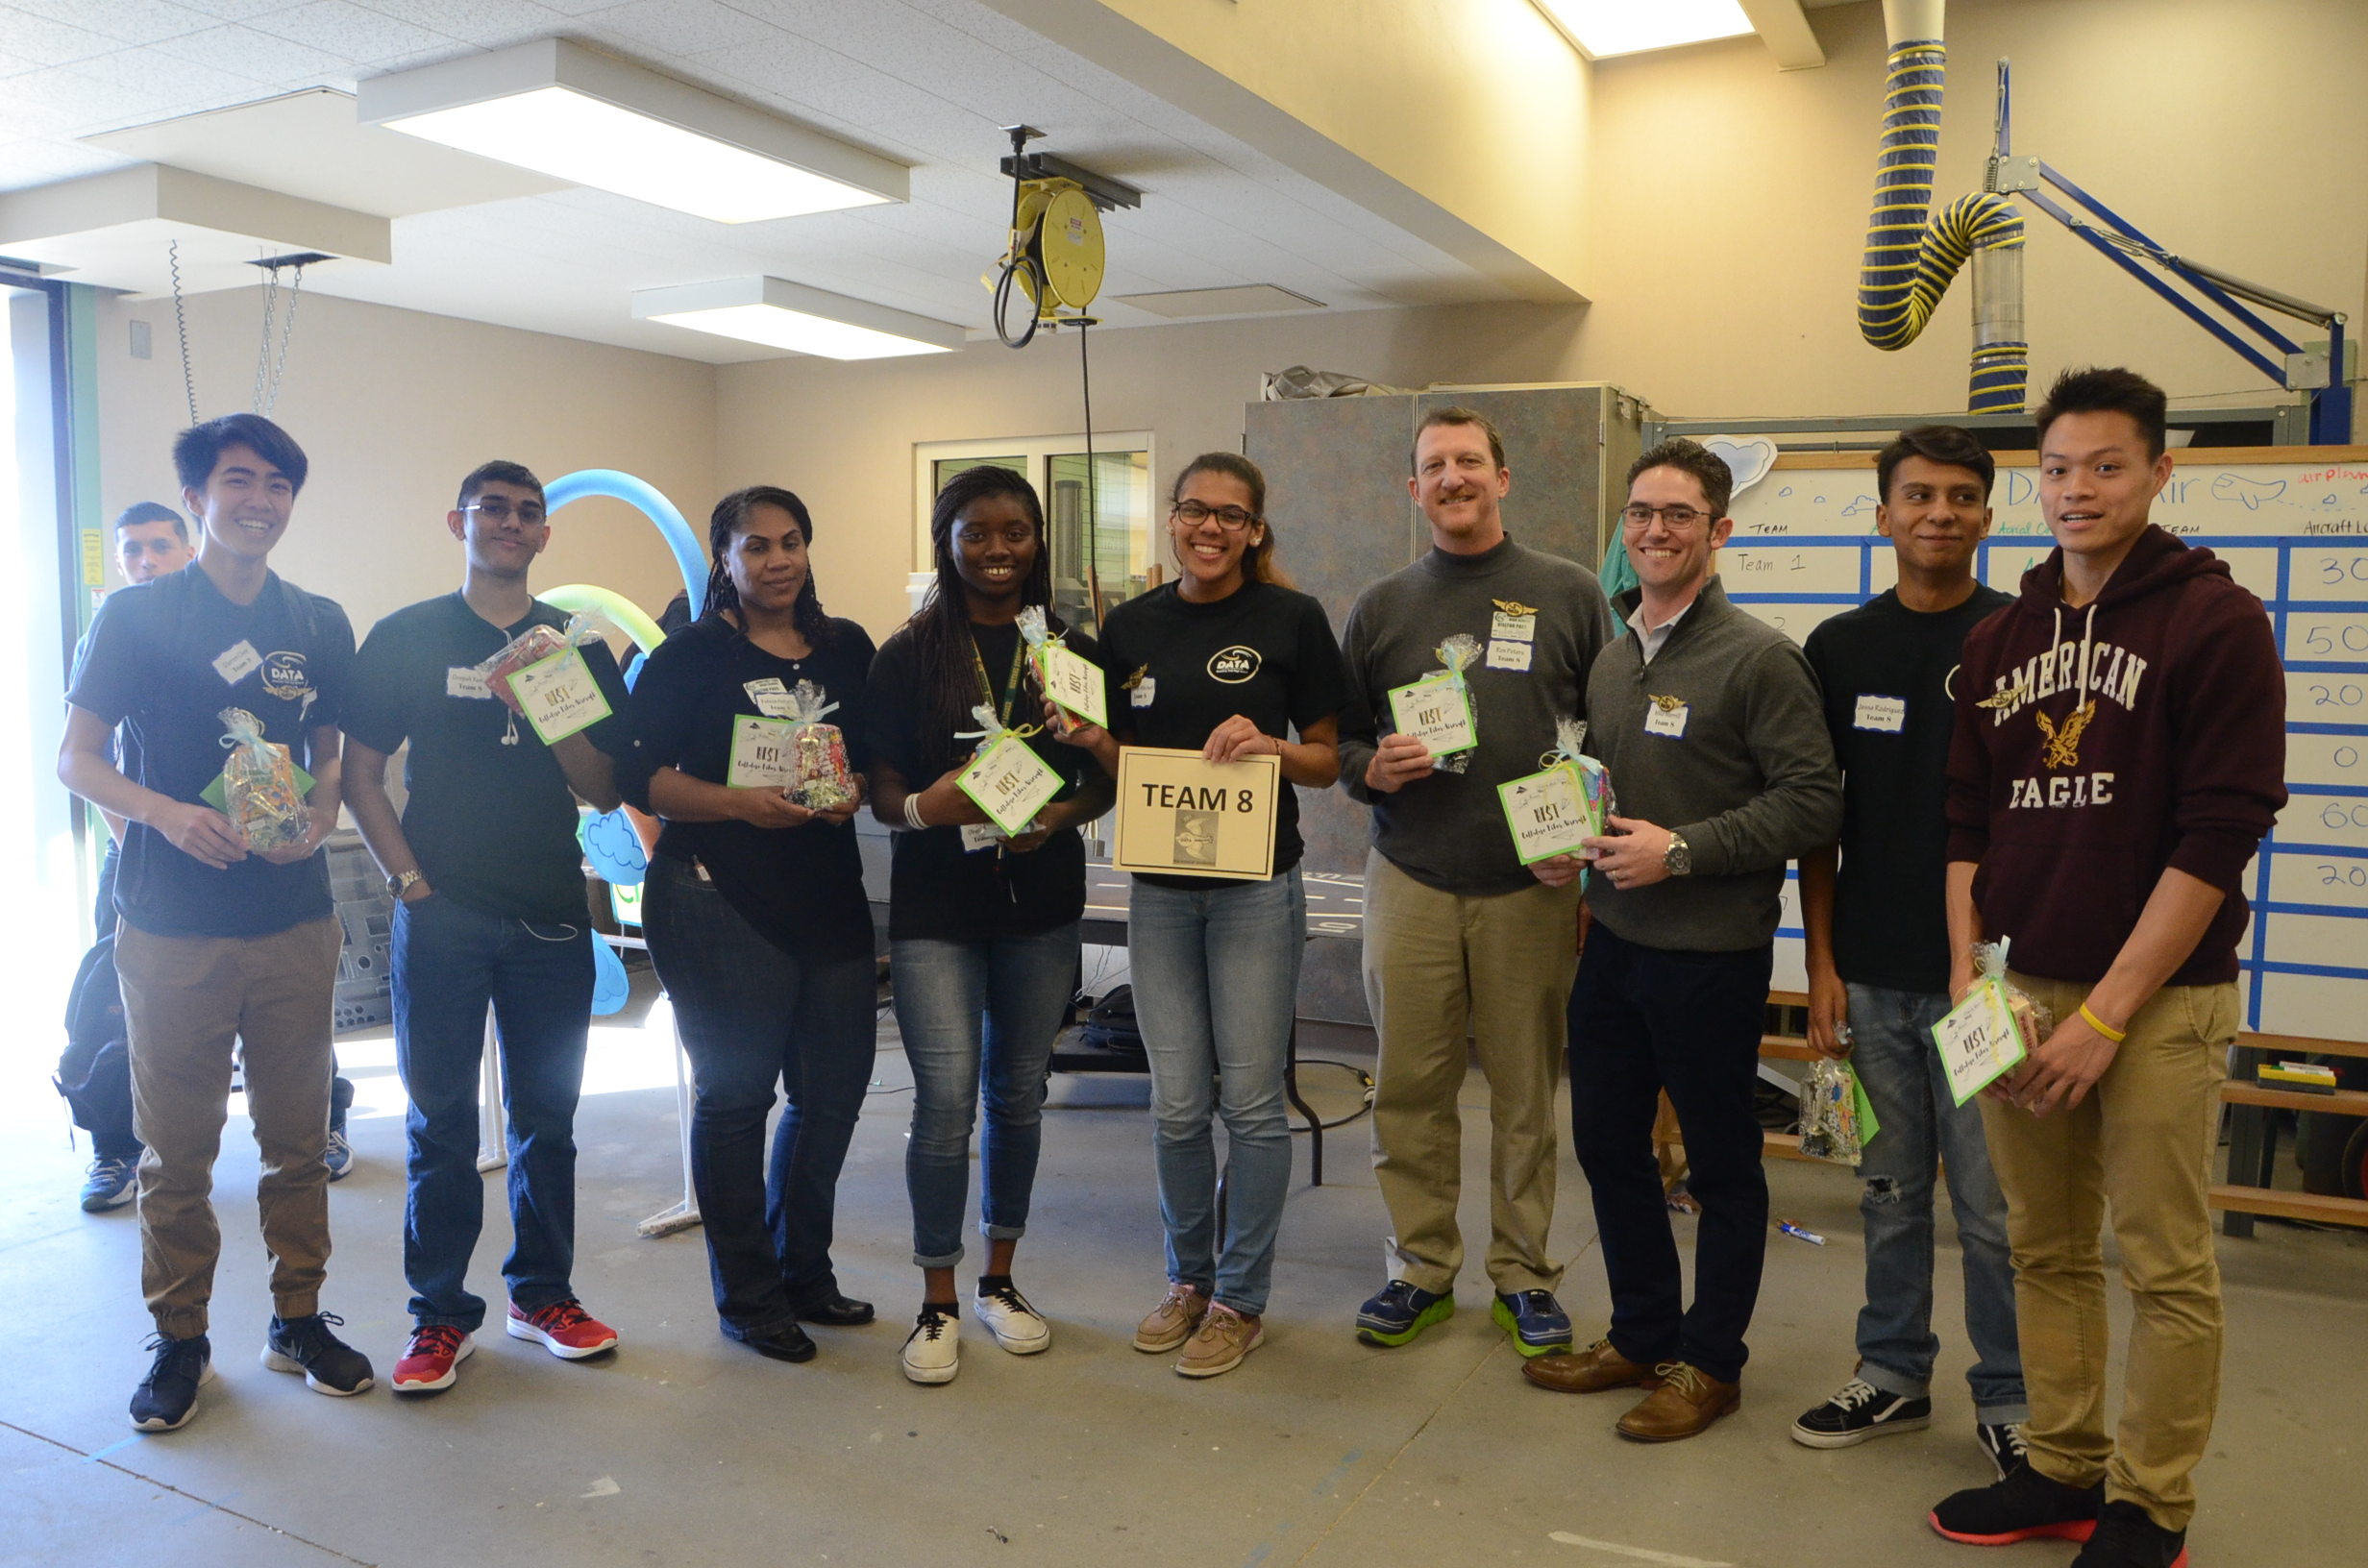 In this photo, you can see that those participating in the competition earned a special set of golden DATA wings, which were designed by DATA student Brittney Morgan and created using a 3D printer.